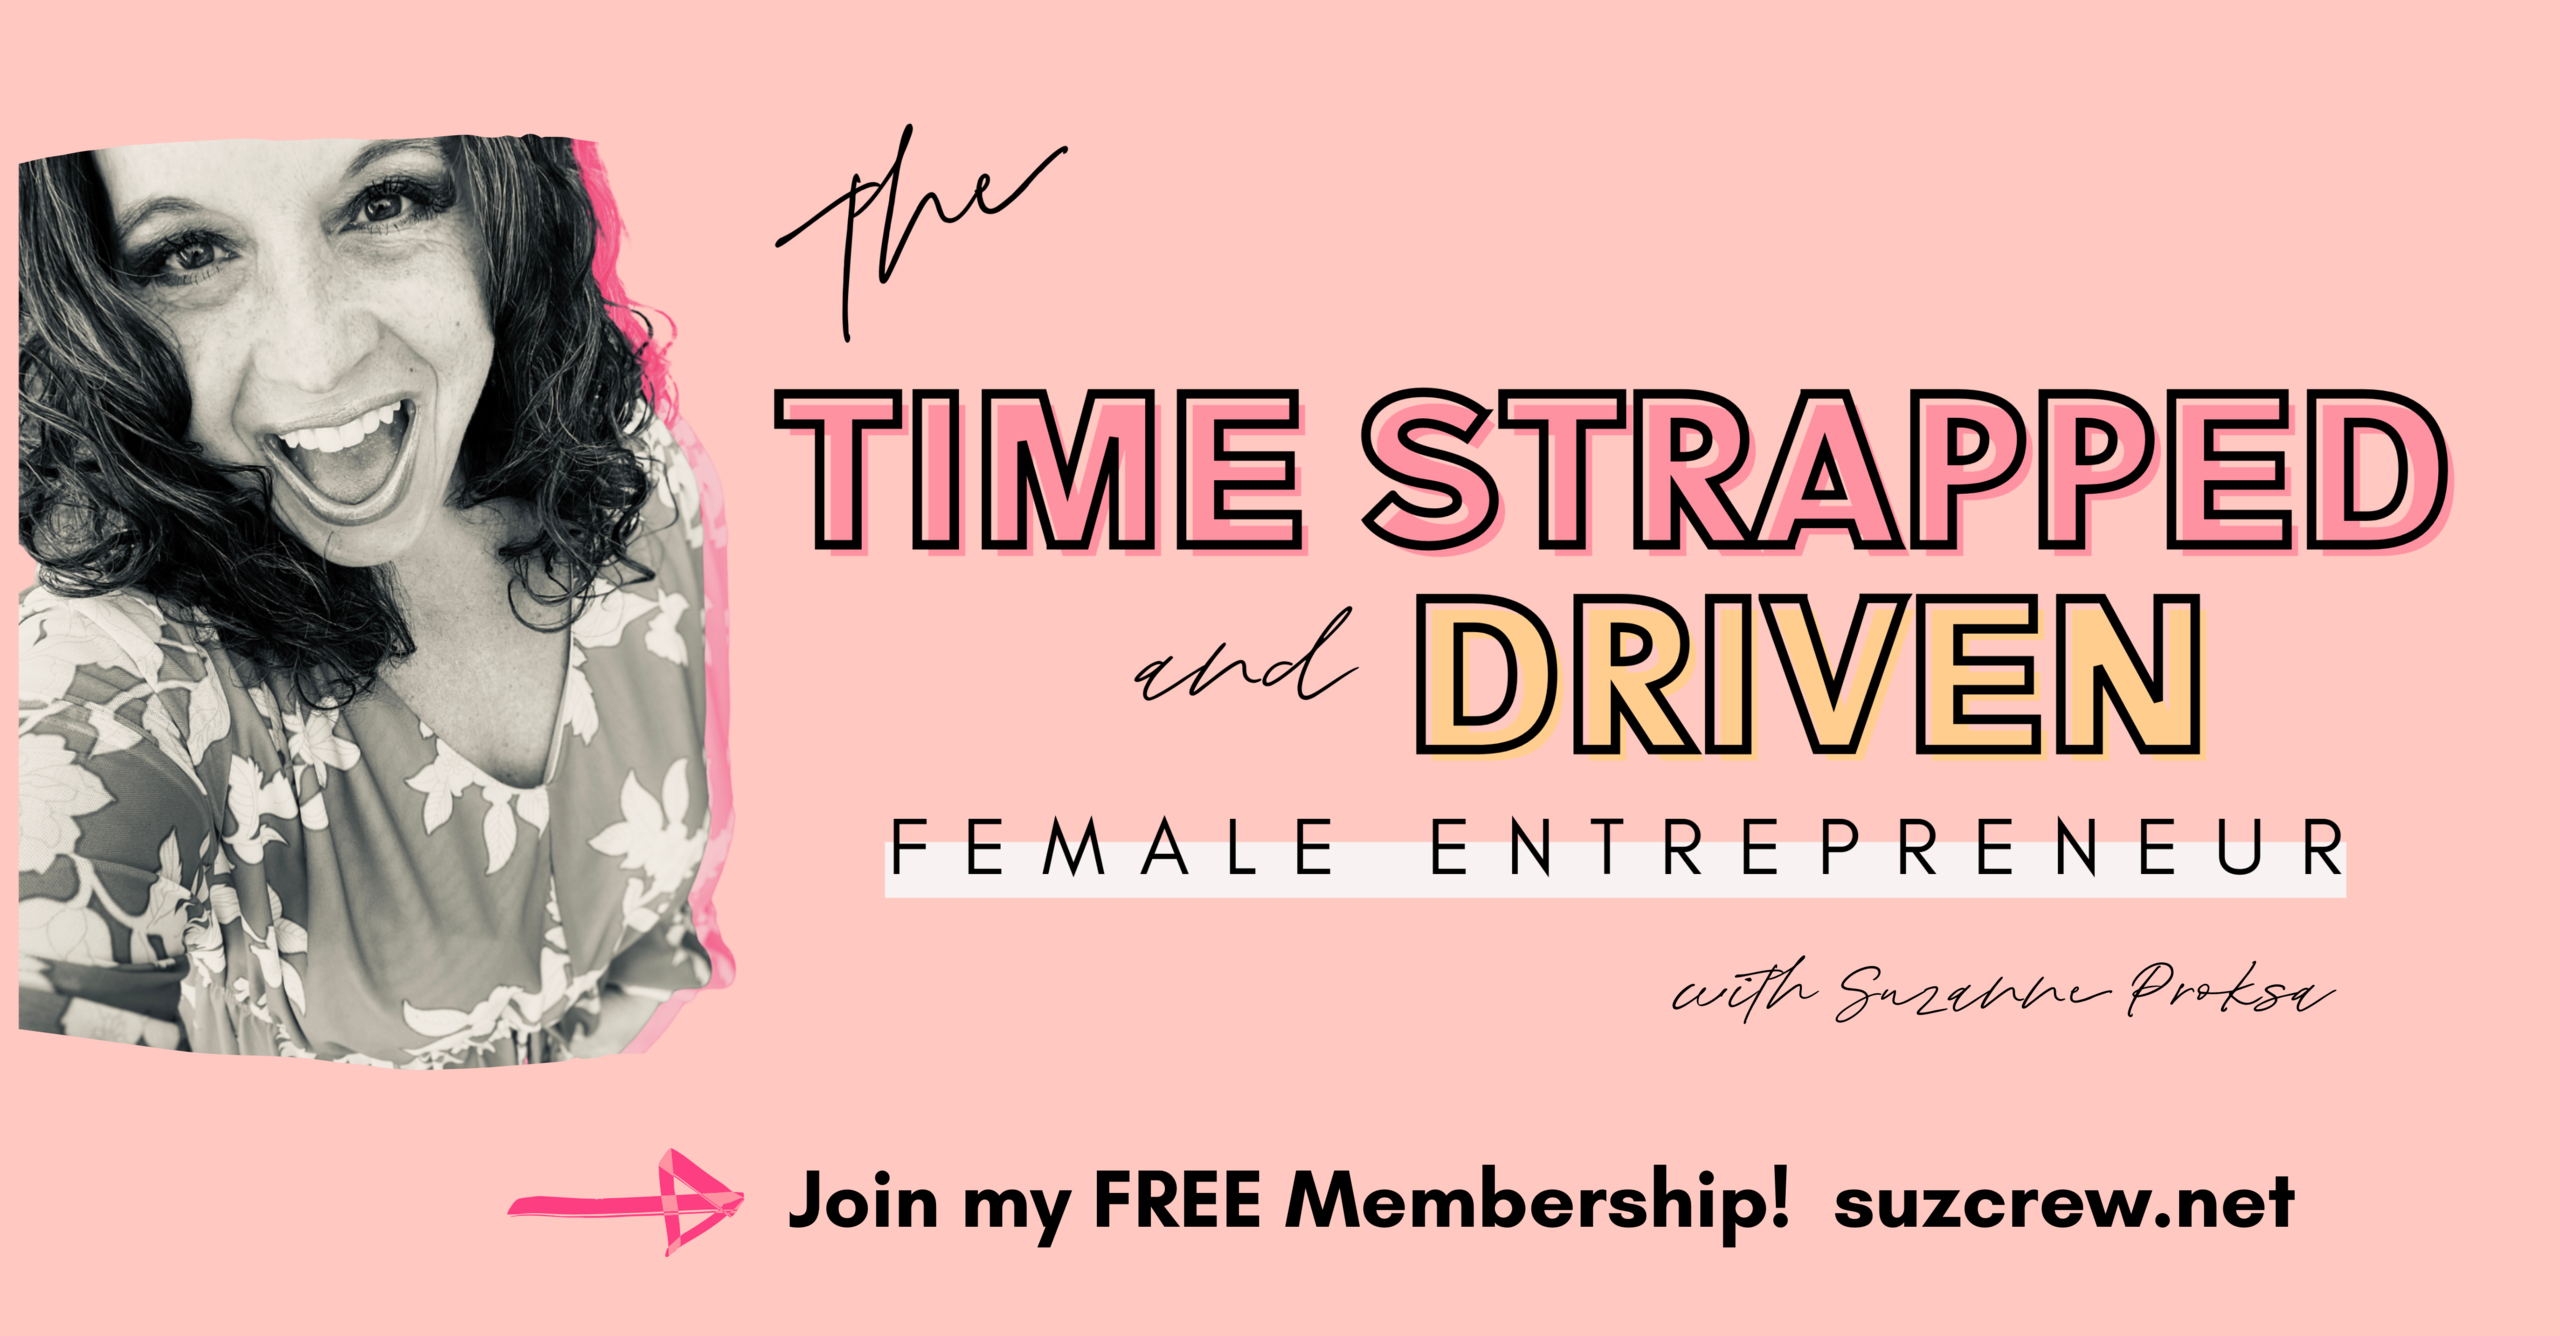 The Time Strapped and Driven Entrepreneur